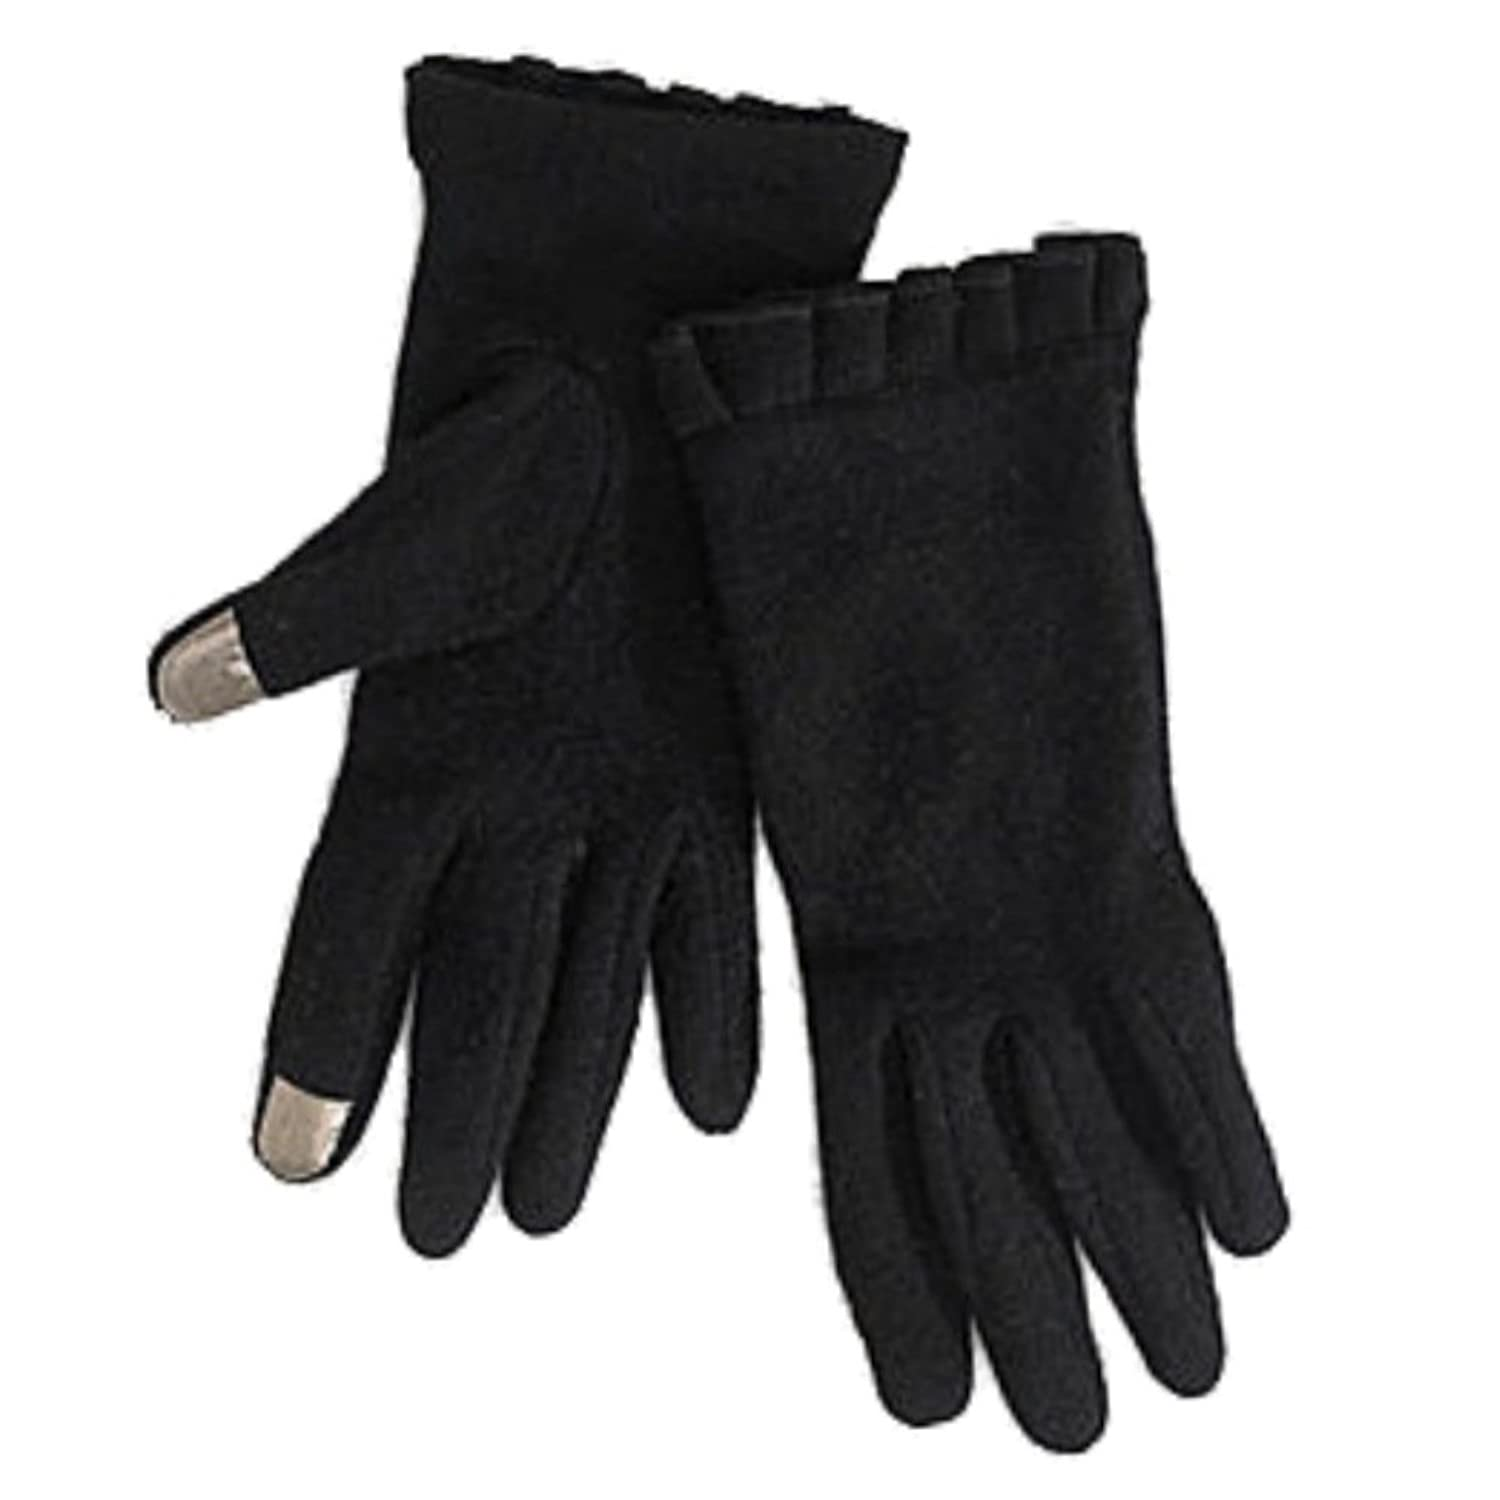 Driving texting gloves - Runway Womens Black Ruffled Texting Gloves Sleek Winter Driving Iphone Gloves On Sale